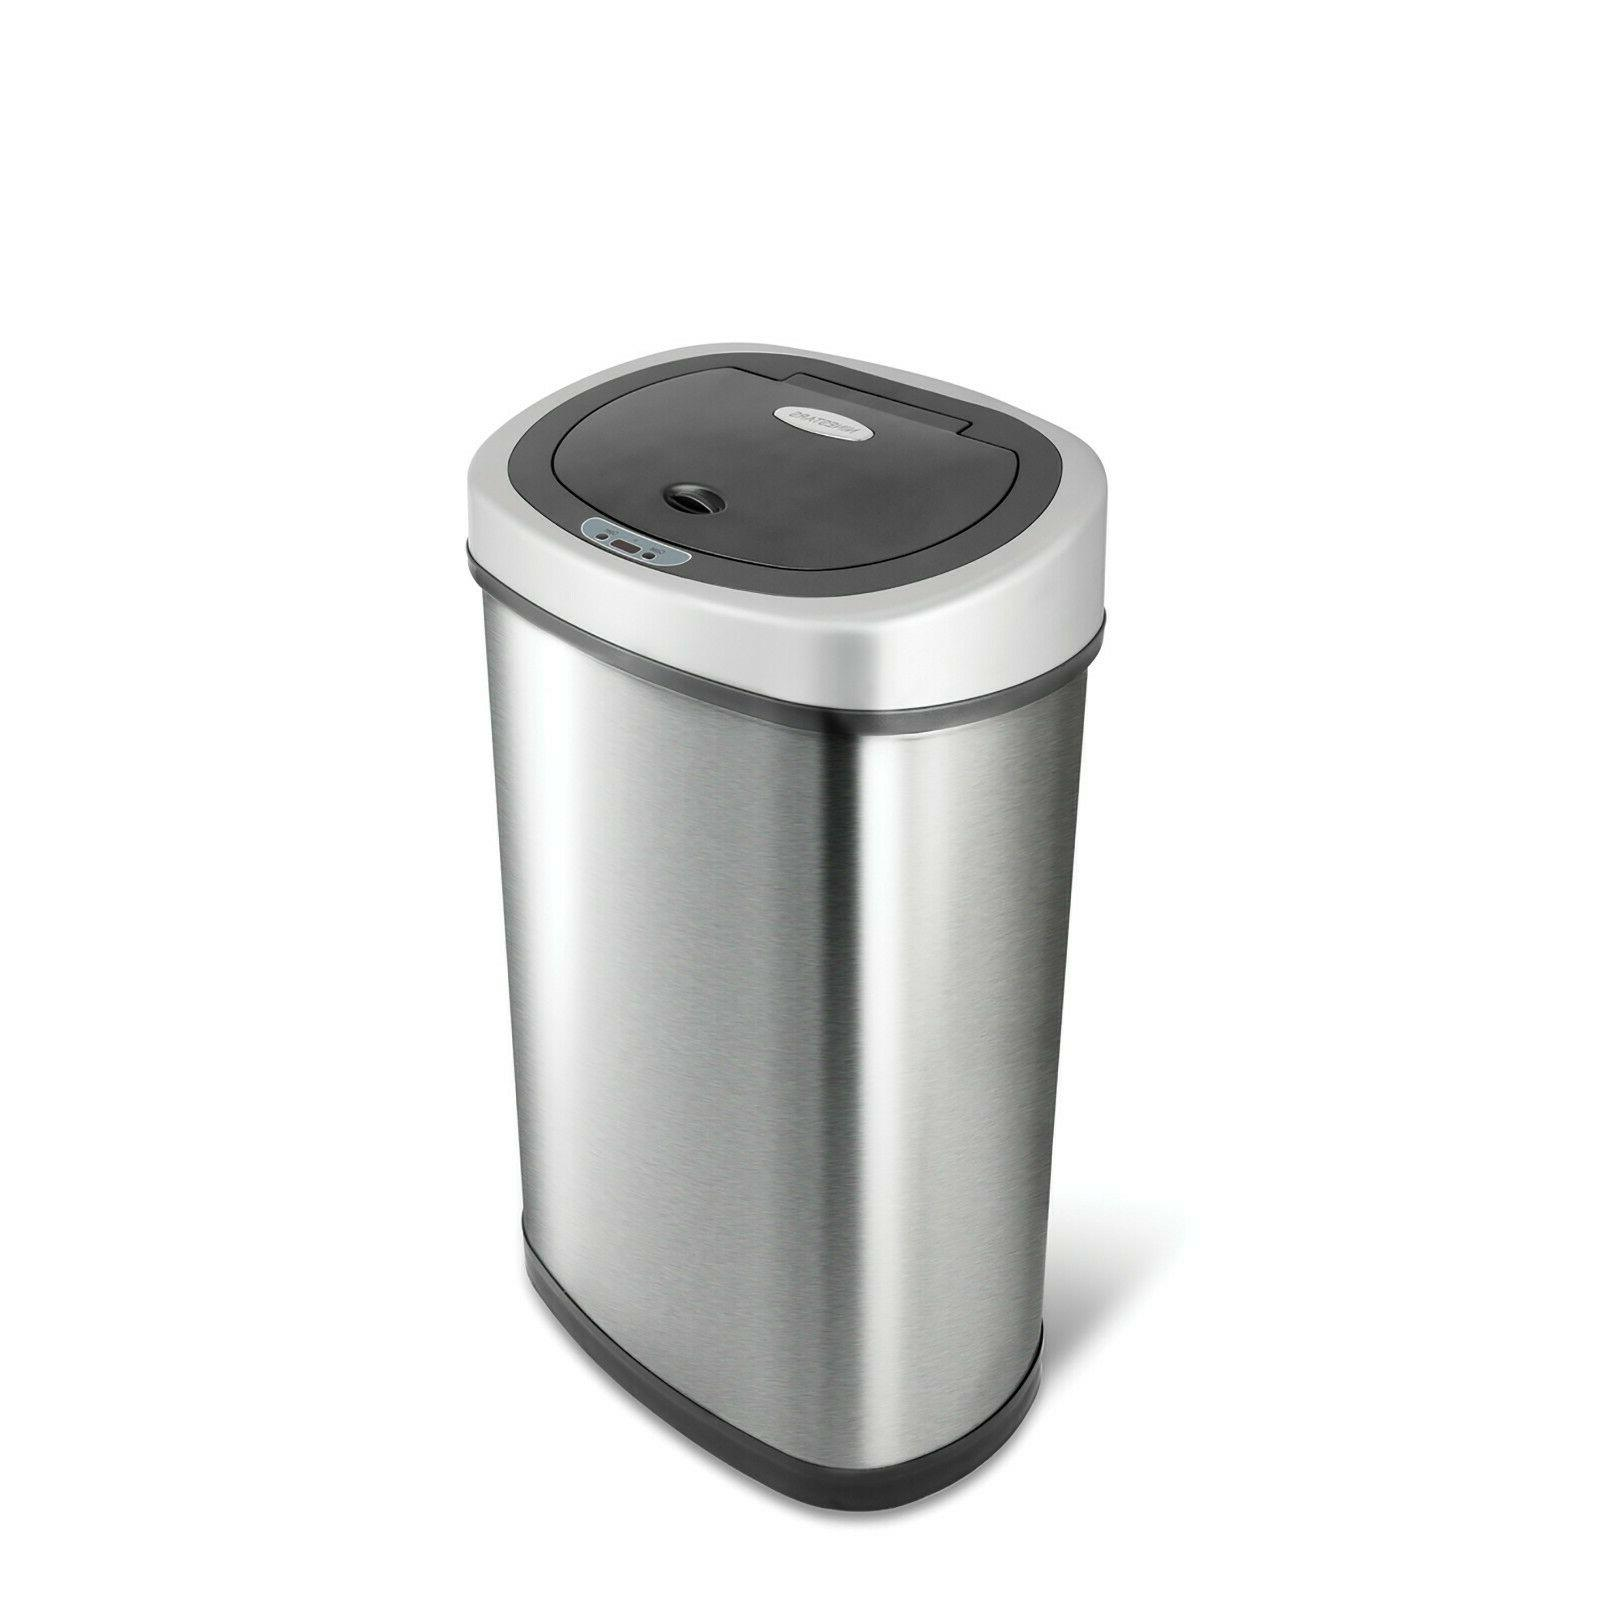 touchless stainless steel 13 trash can 2